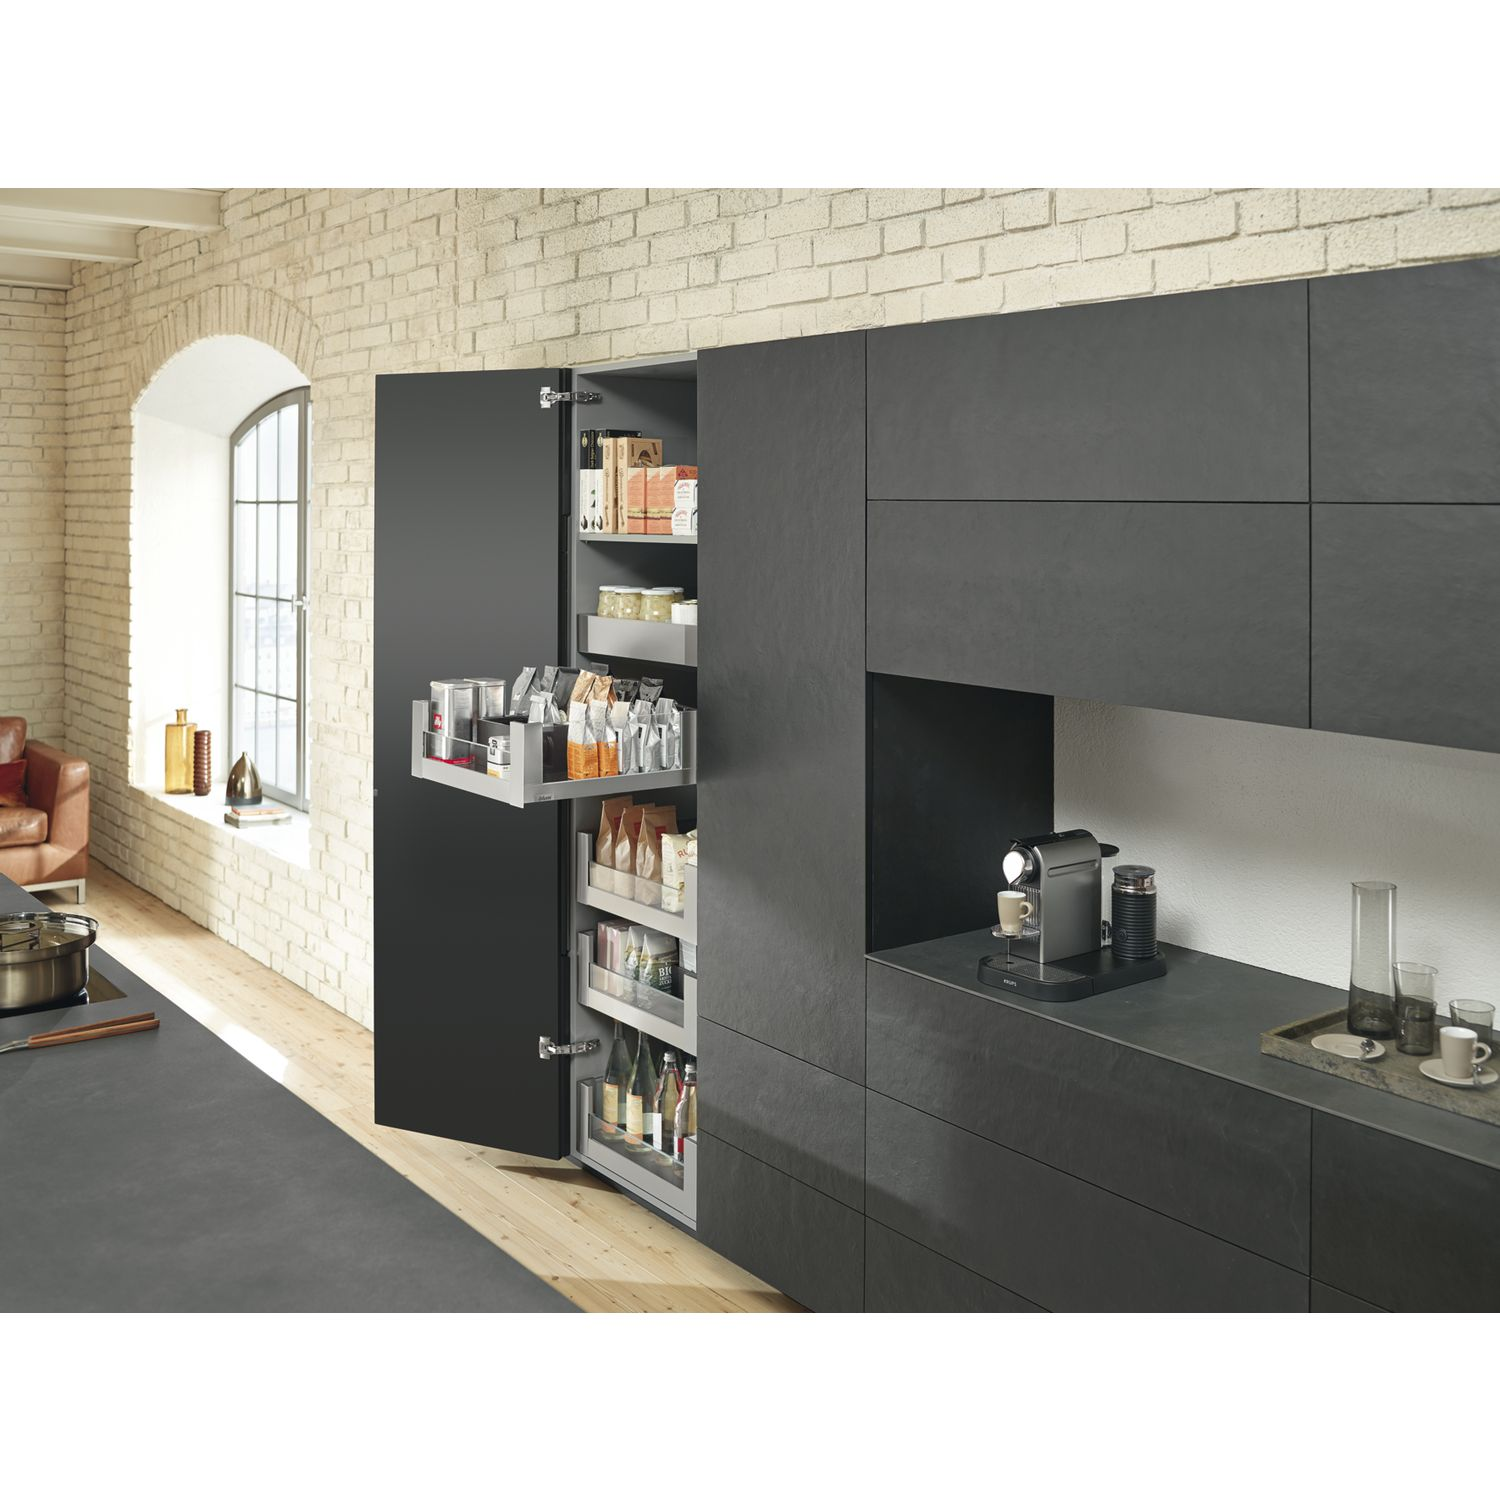 LEGRABOX free SPACE TOWER